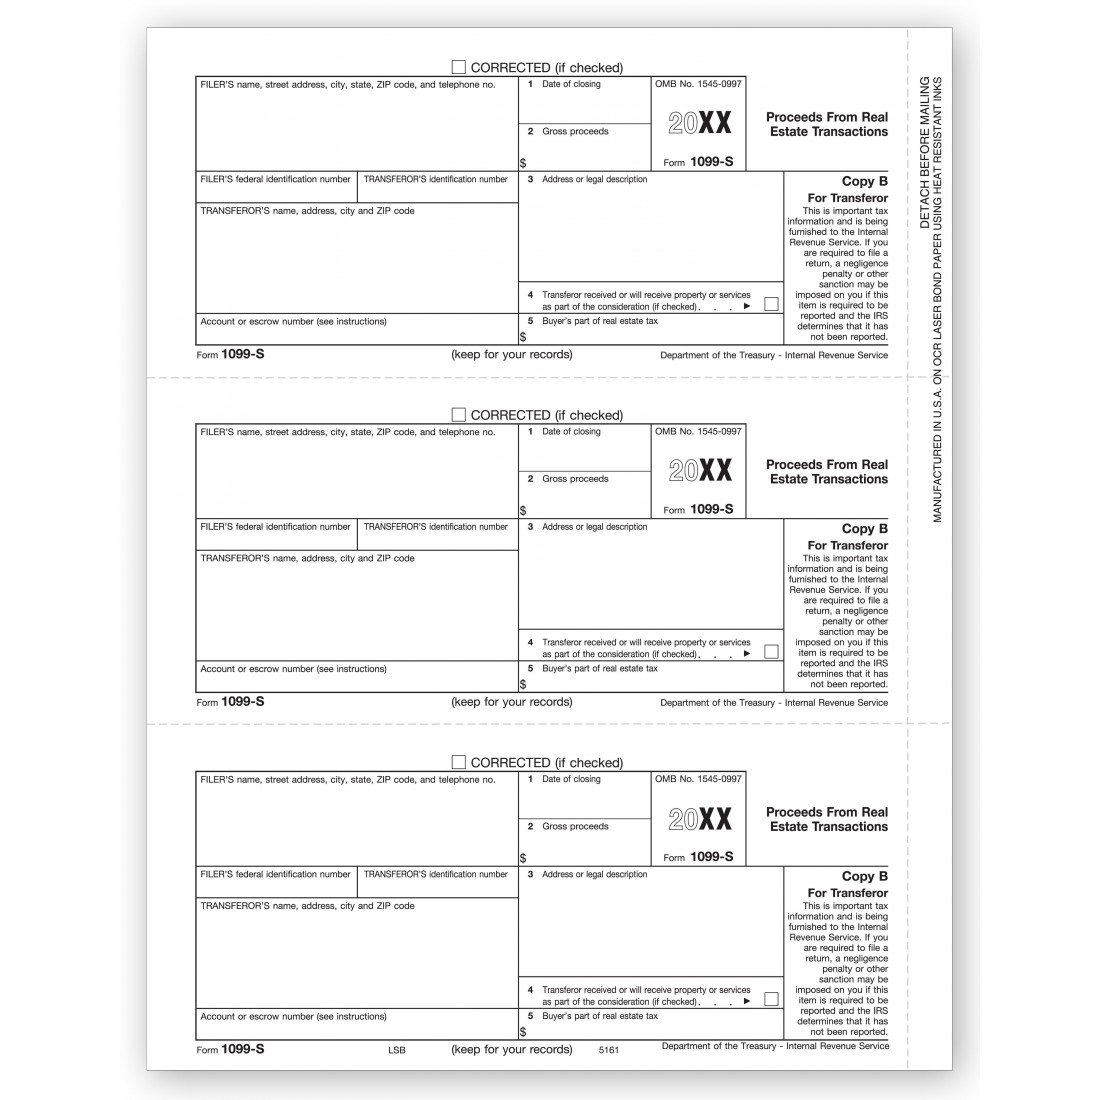 Tax Form 1099 S, Copy B